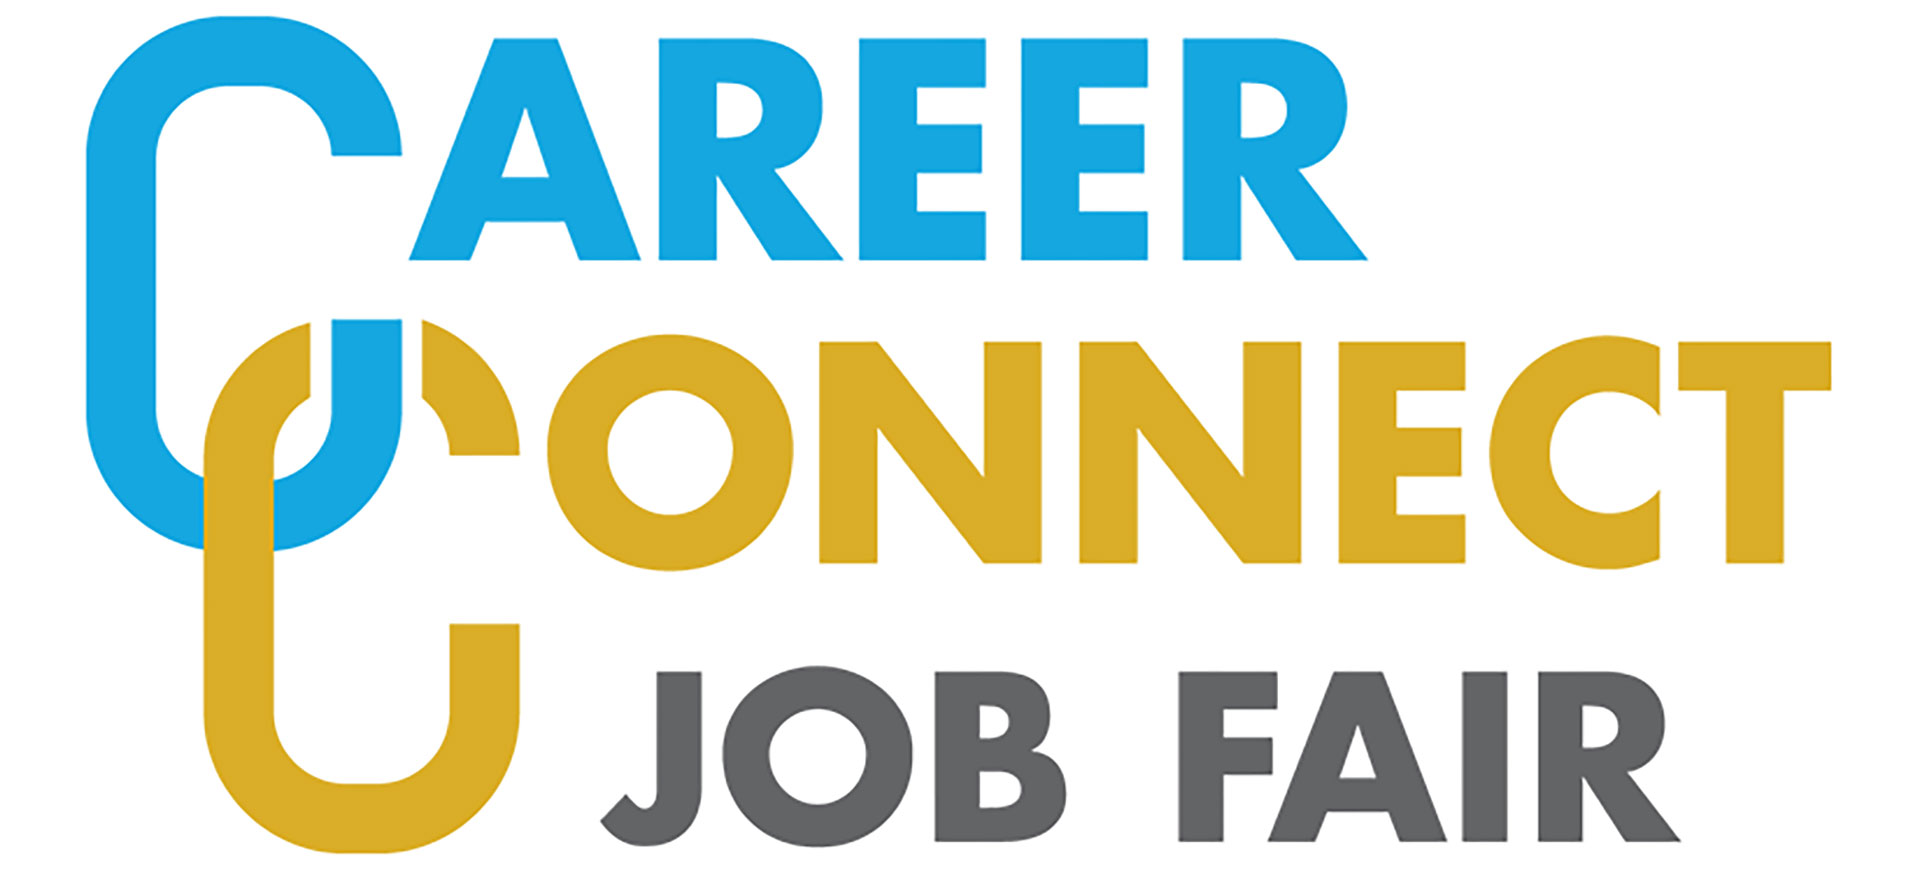 Career Connect Job Fair